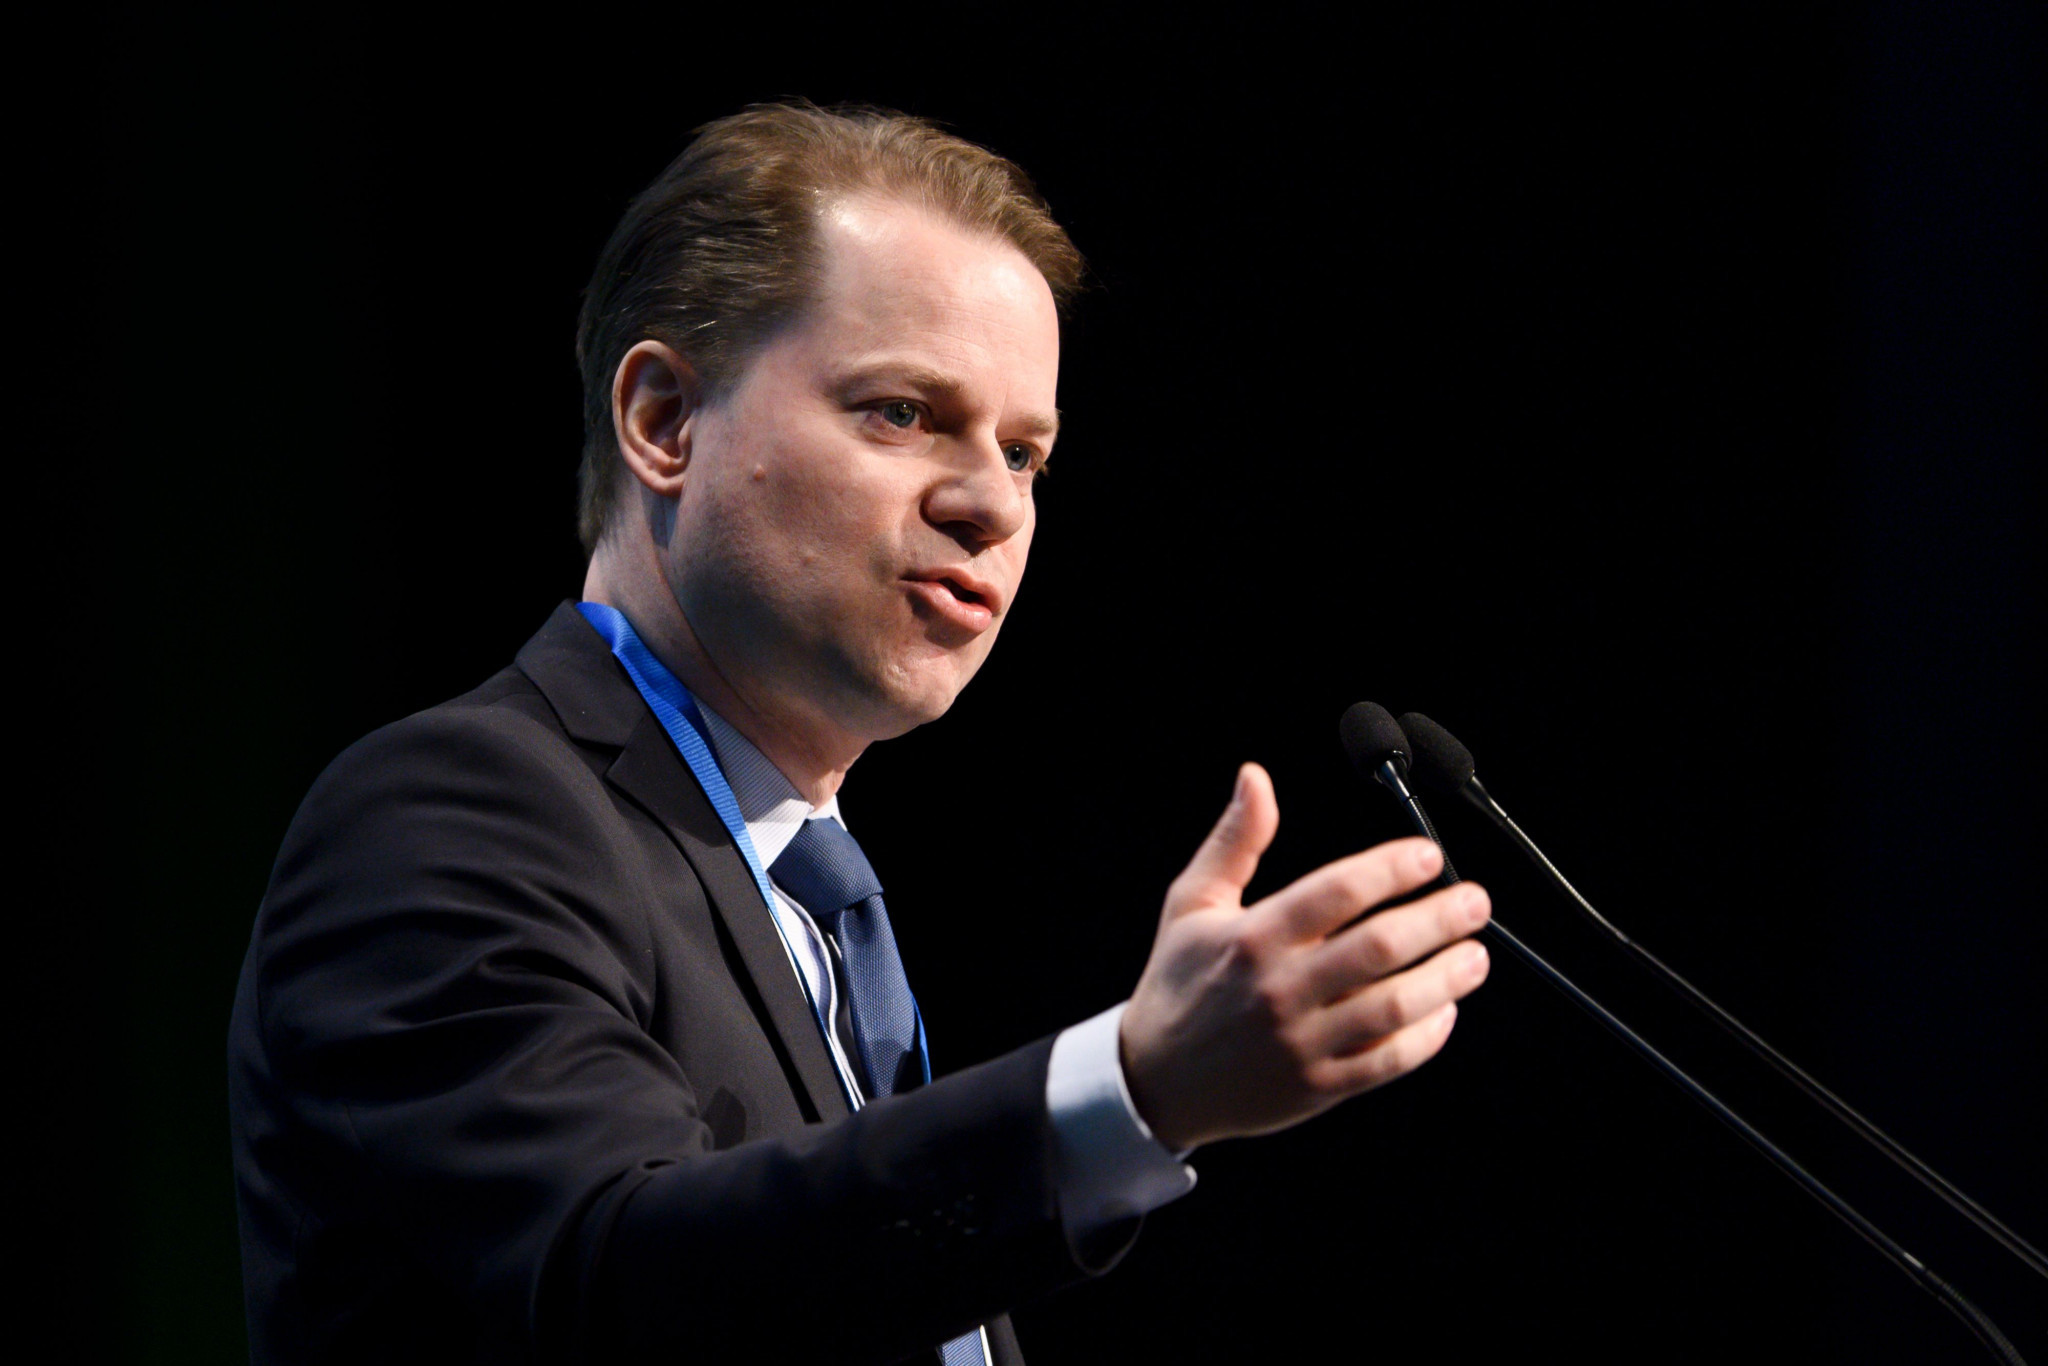 WADA director general Olivier Niggli spoke about the fall in the WADA research budget ©WADA